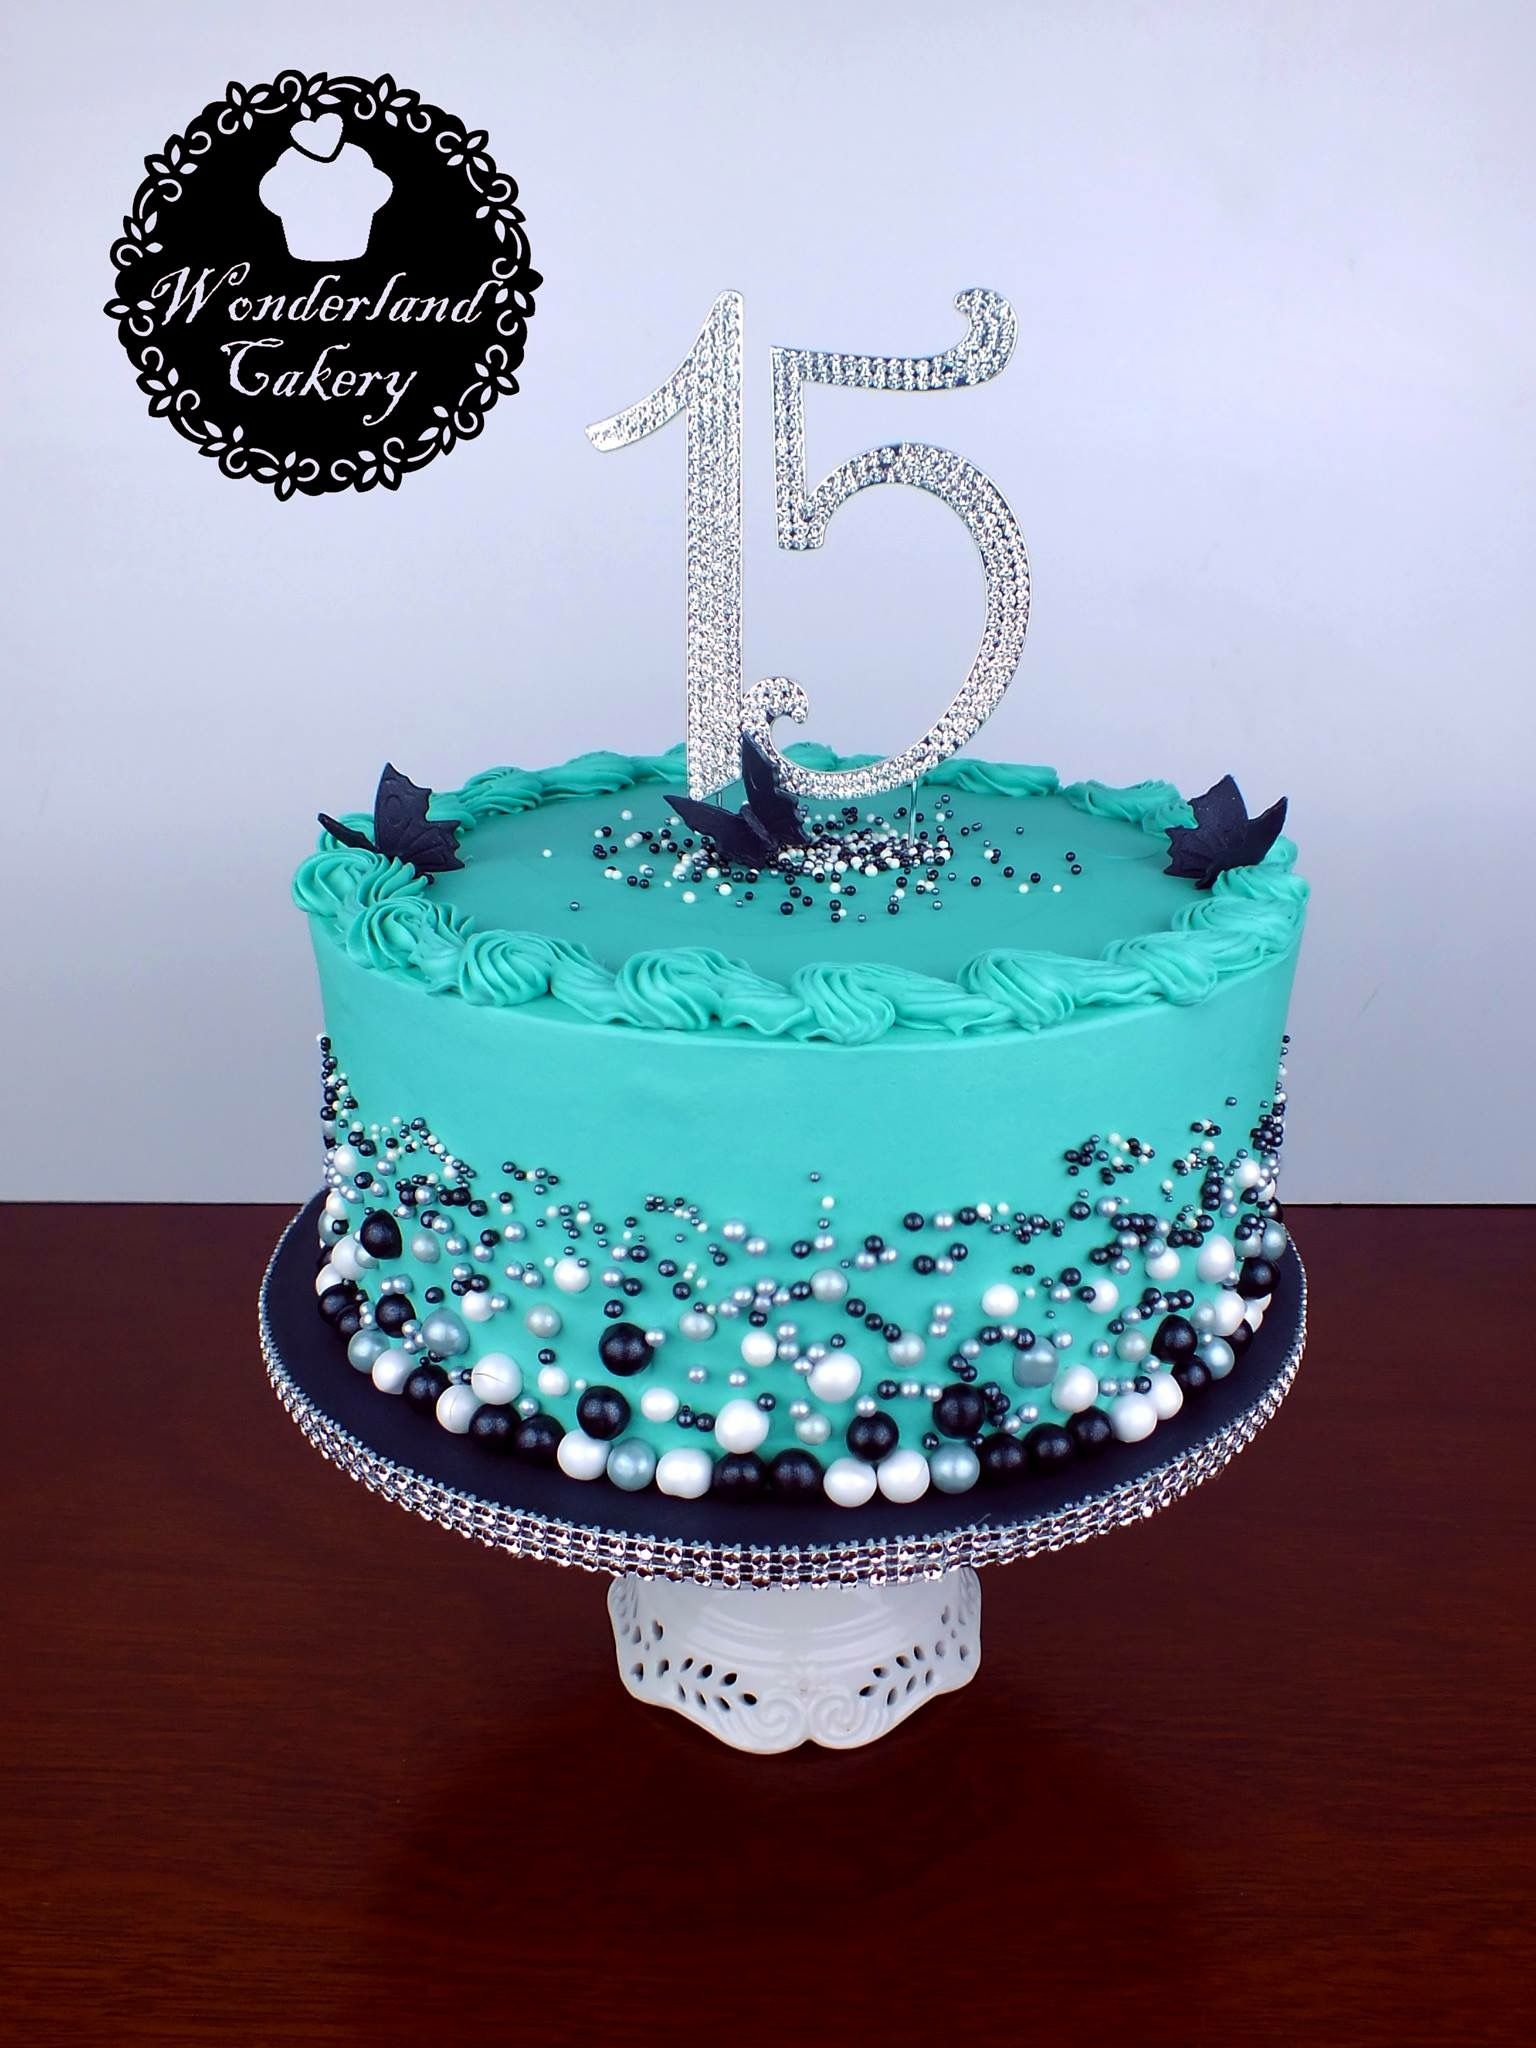 Admirable 15Th Birthday Cake Blue Turquoise Black White Butterflies Birthday Cards Printable Riciscafe Filternl